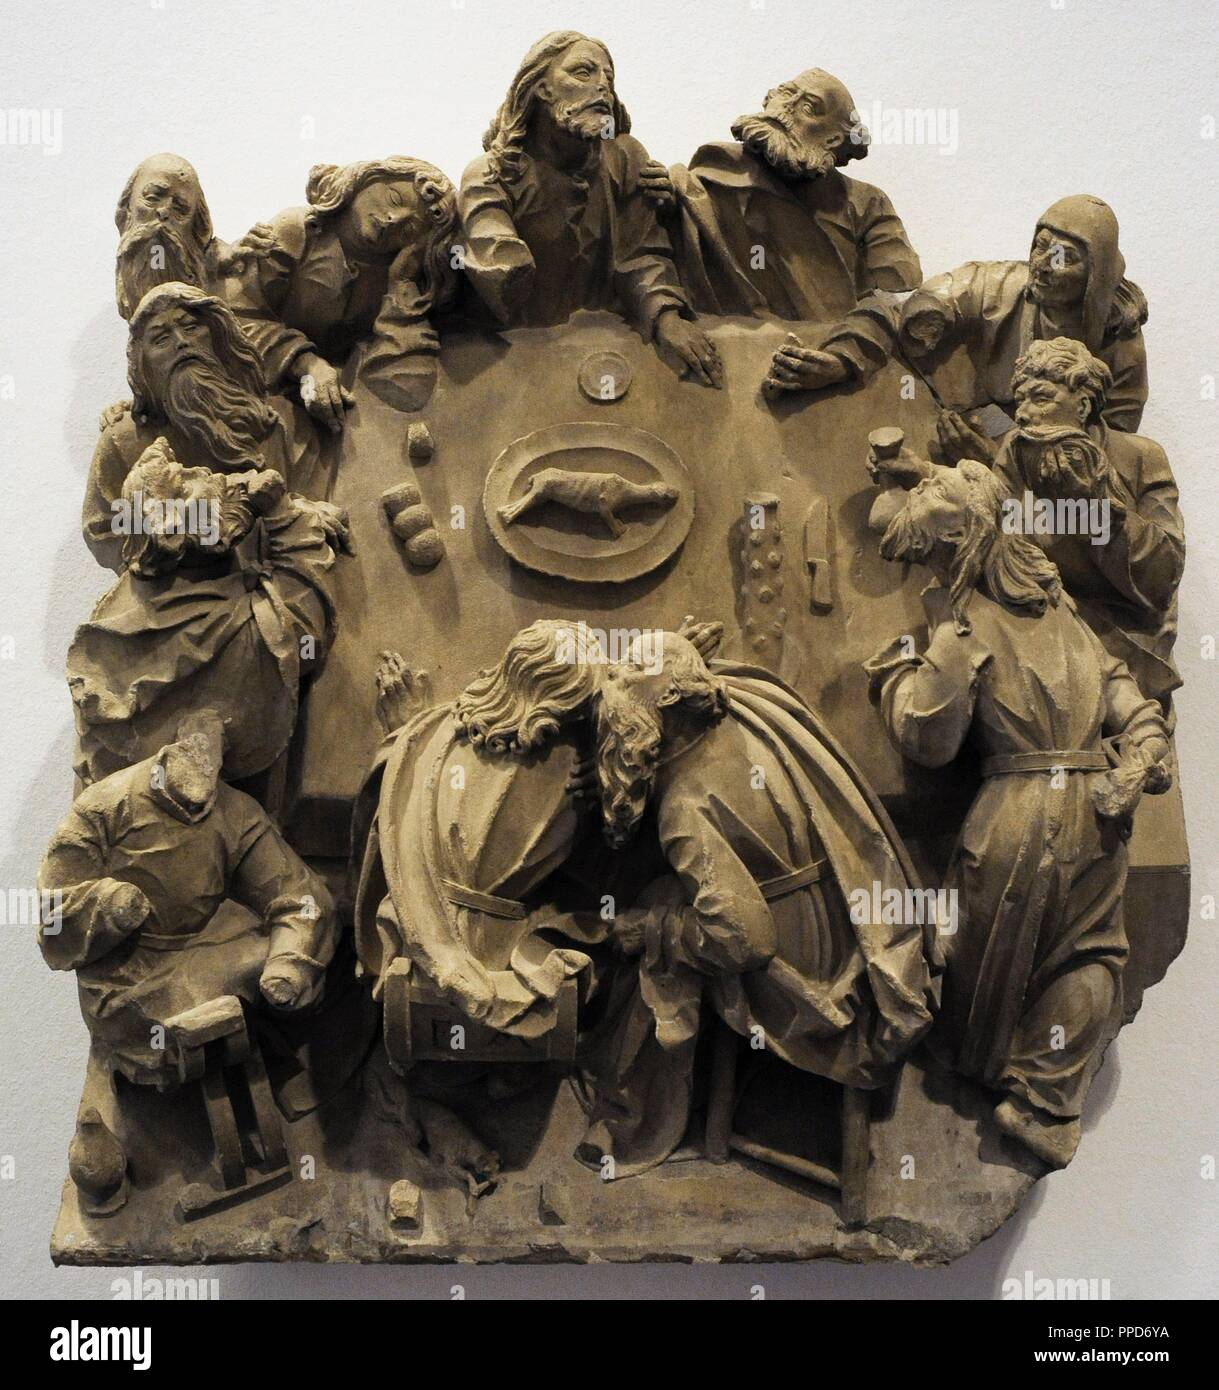 The Last Supper from the sacrament house of Cologne Cathedral, Germany. Cologne, c. 1510. Baumberg Sandstone. Schnu_tgen Museum. Cologne, Germany. - Stock Image